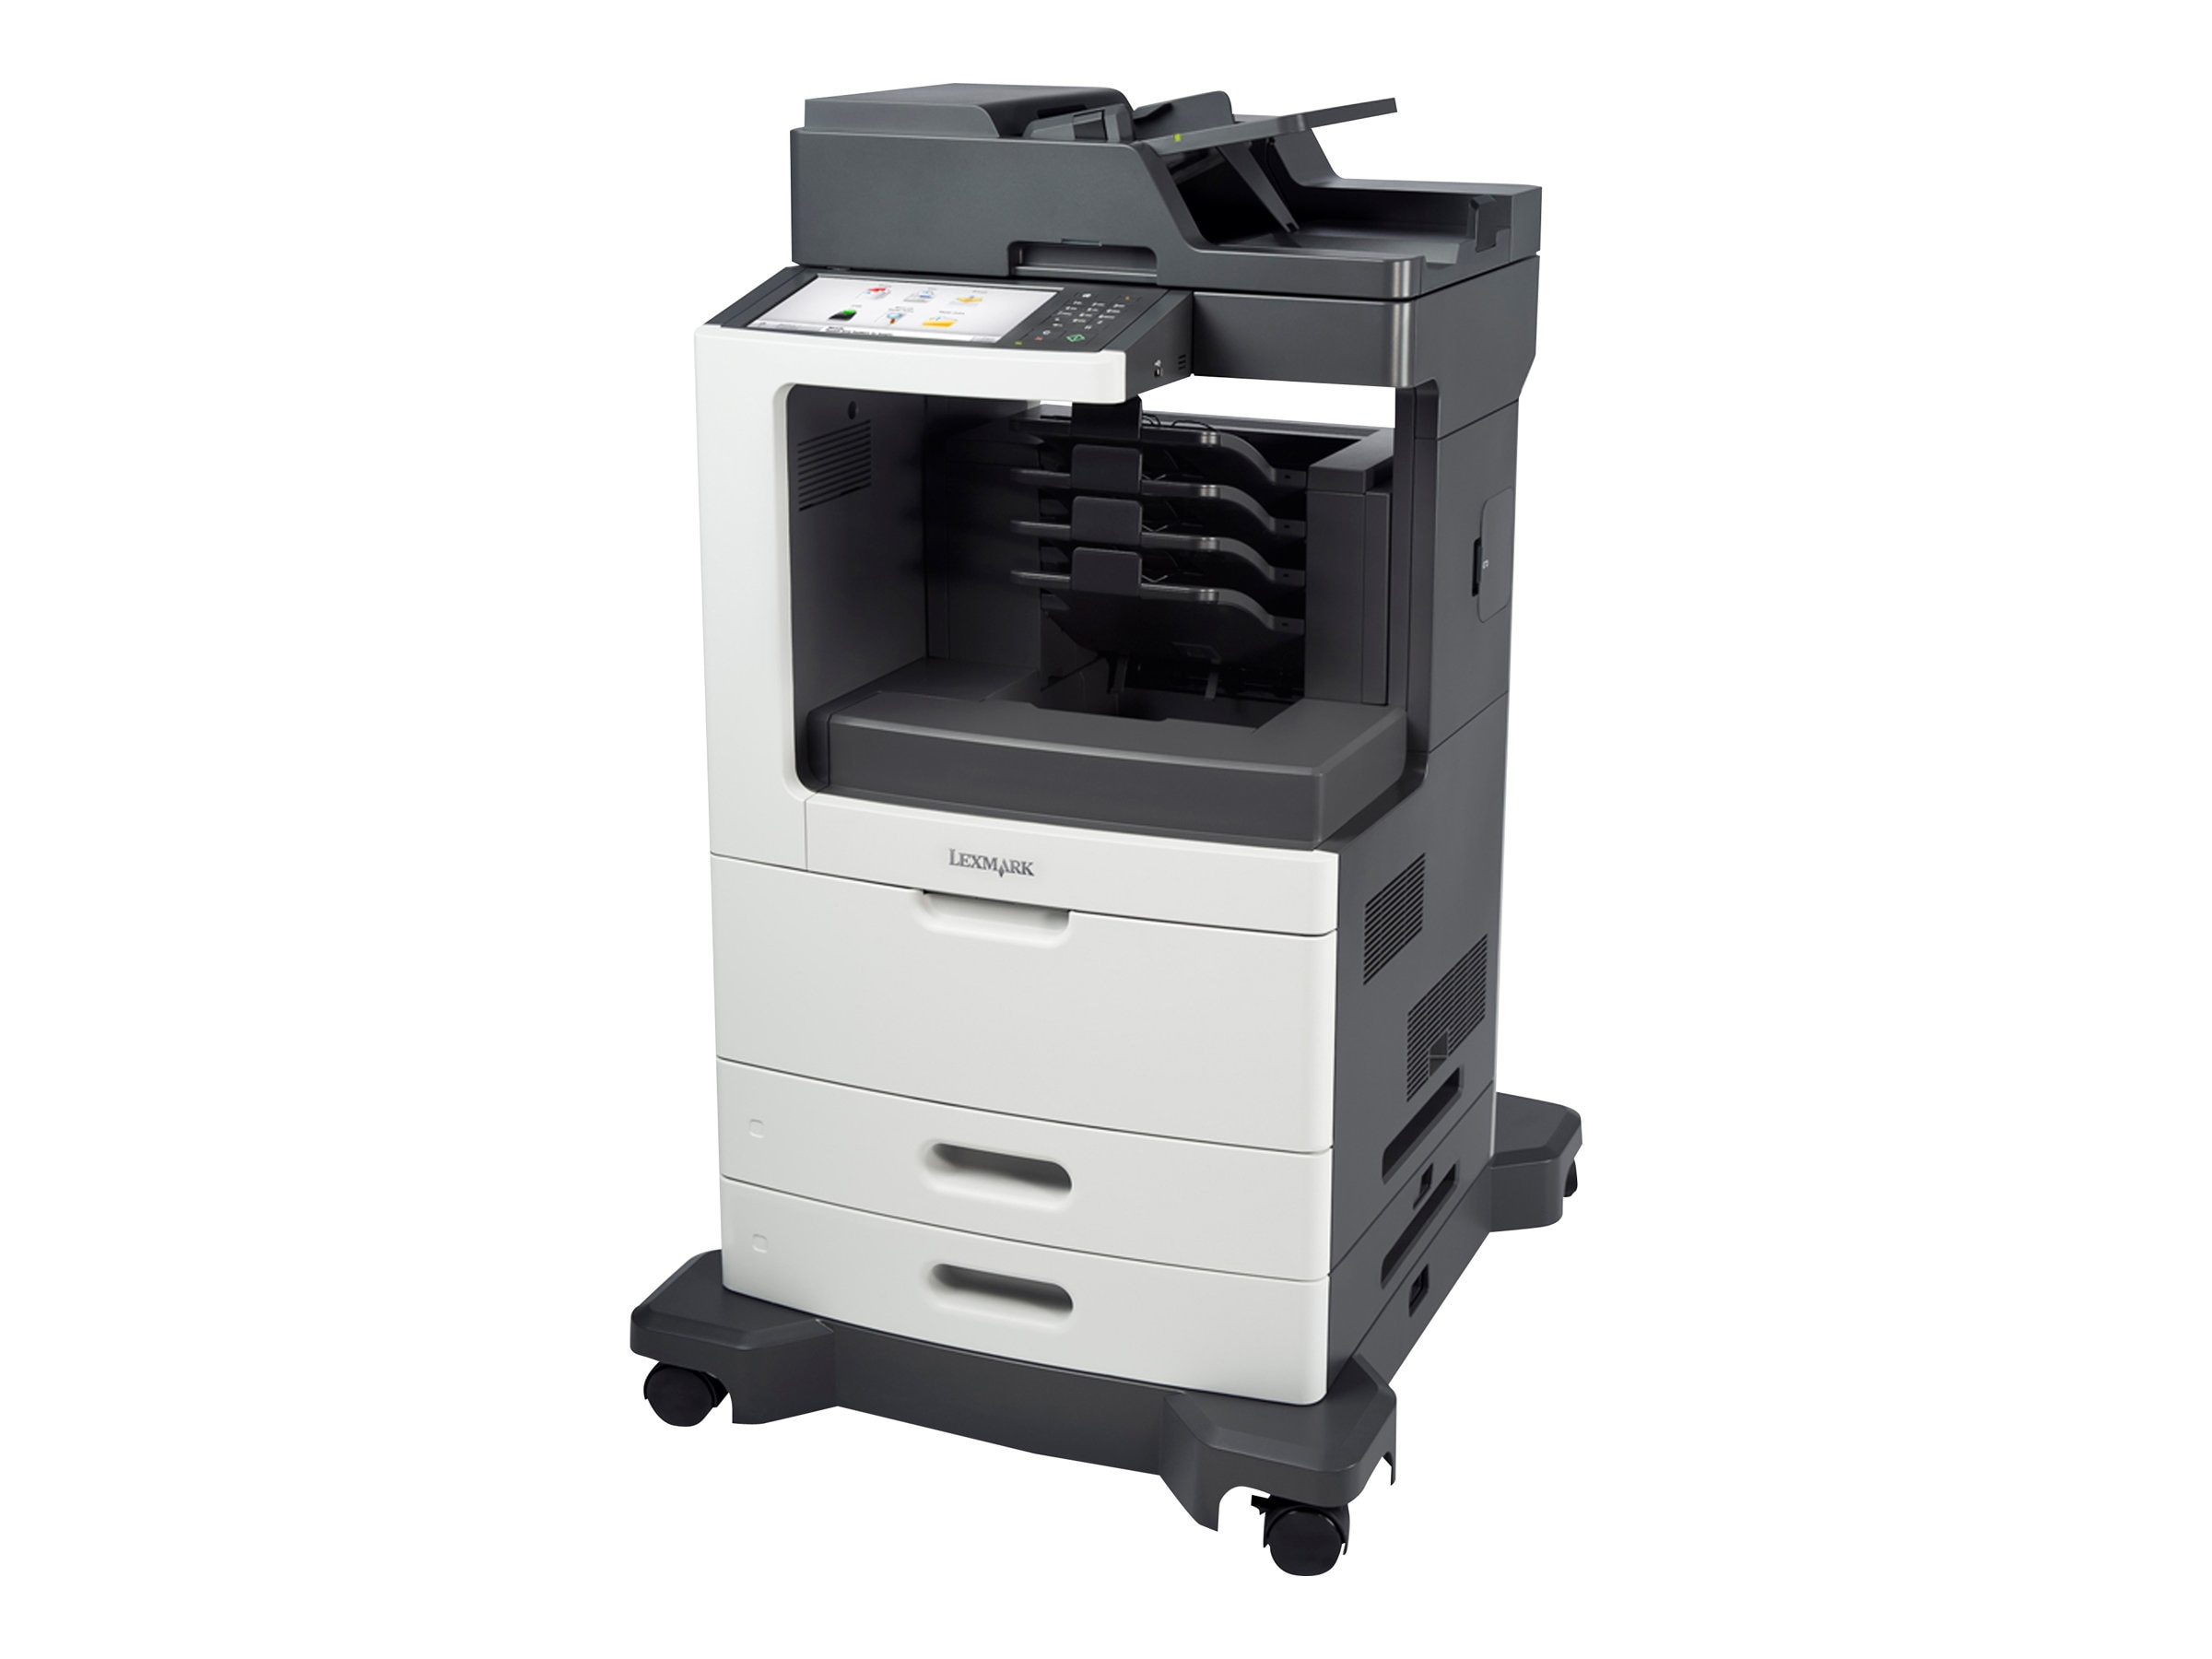 Lexmark MX810dme Monochrome Laser Multifunction Printer, 24T7410, 14908600, MultiFunction - Laser (monochrome)